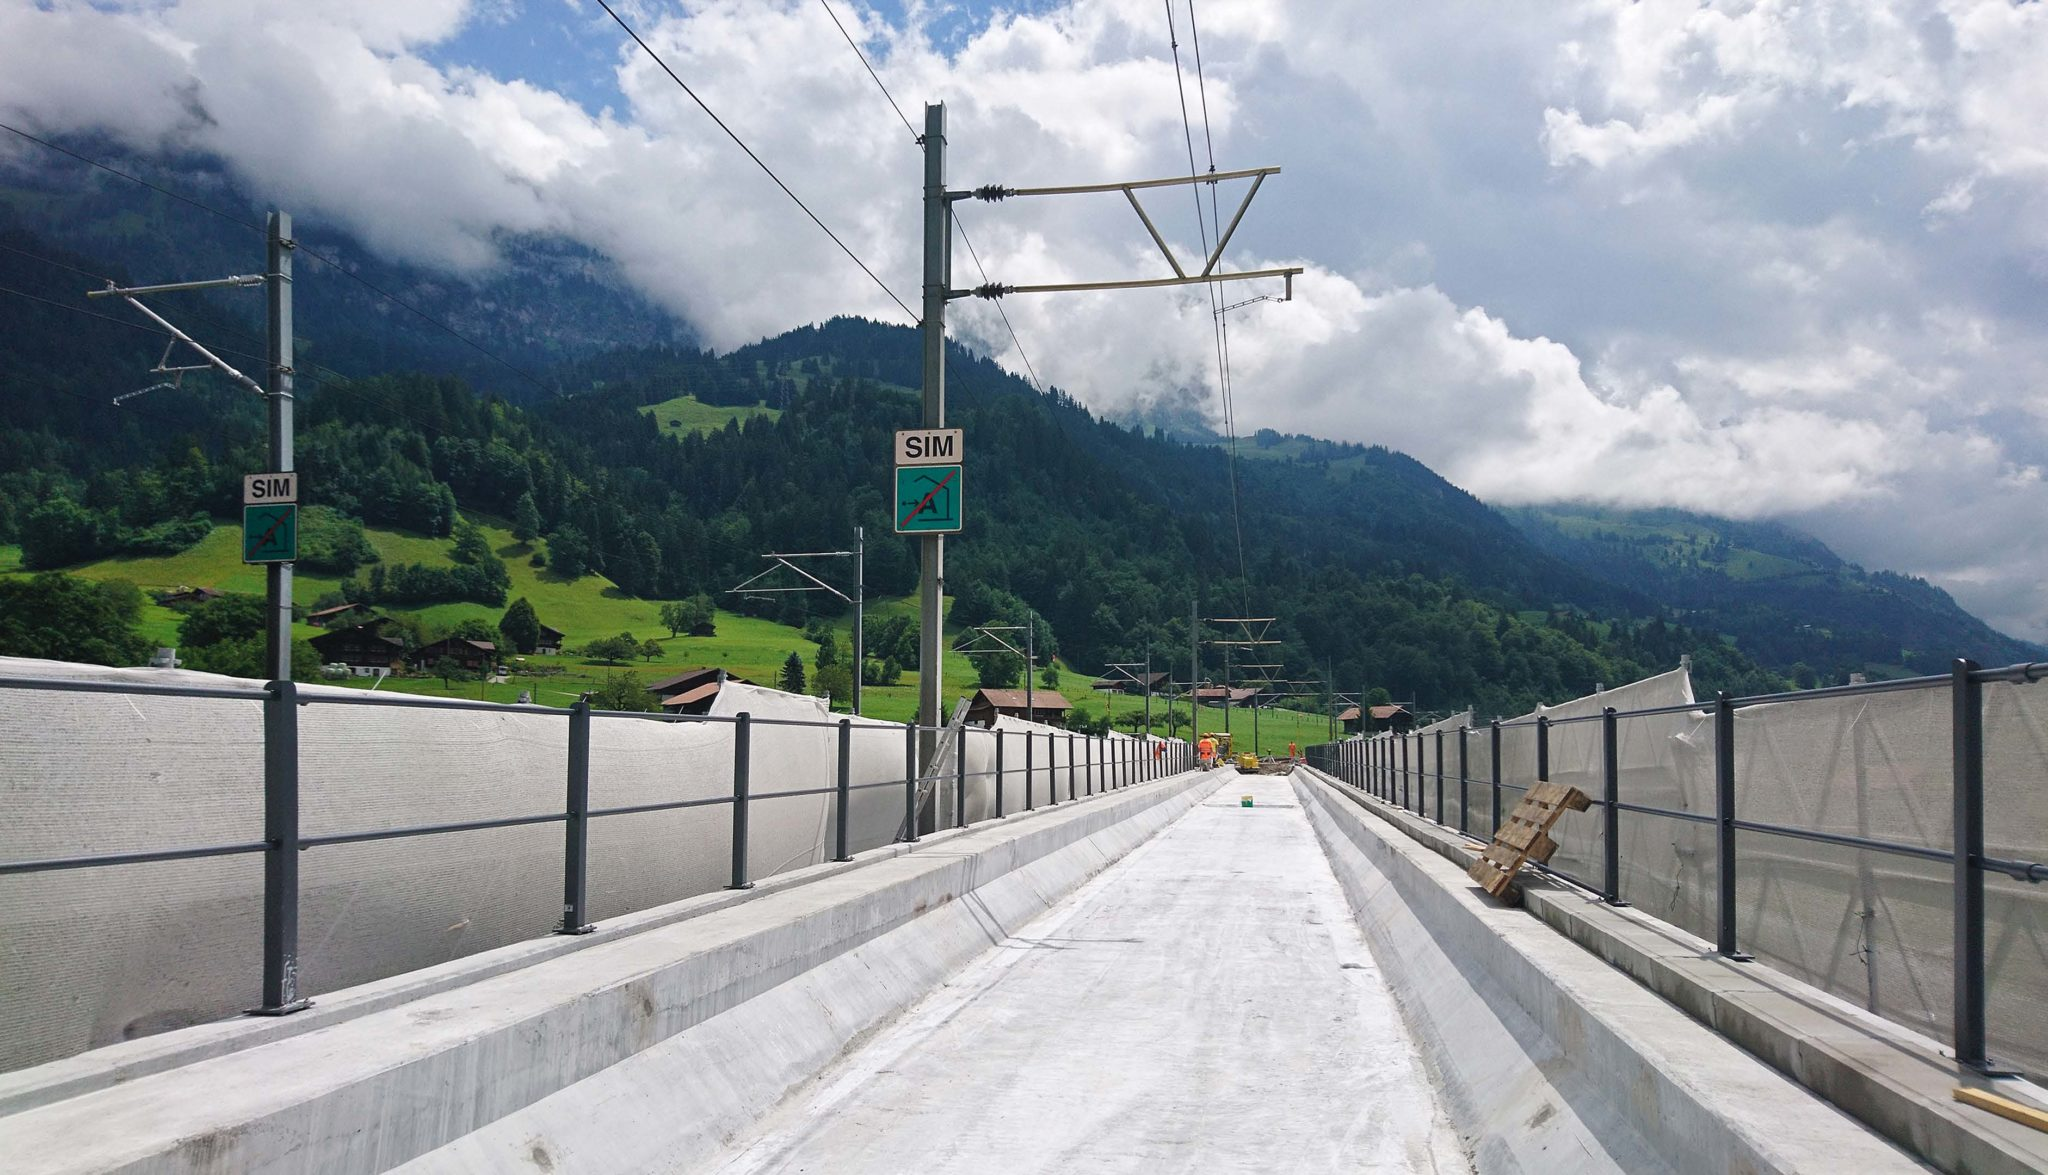 Case Study: Kander Viaduct, Switzerland